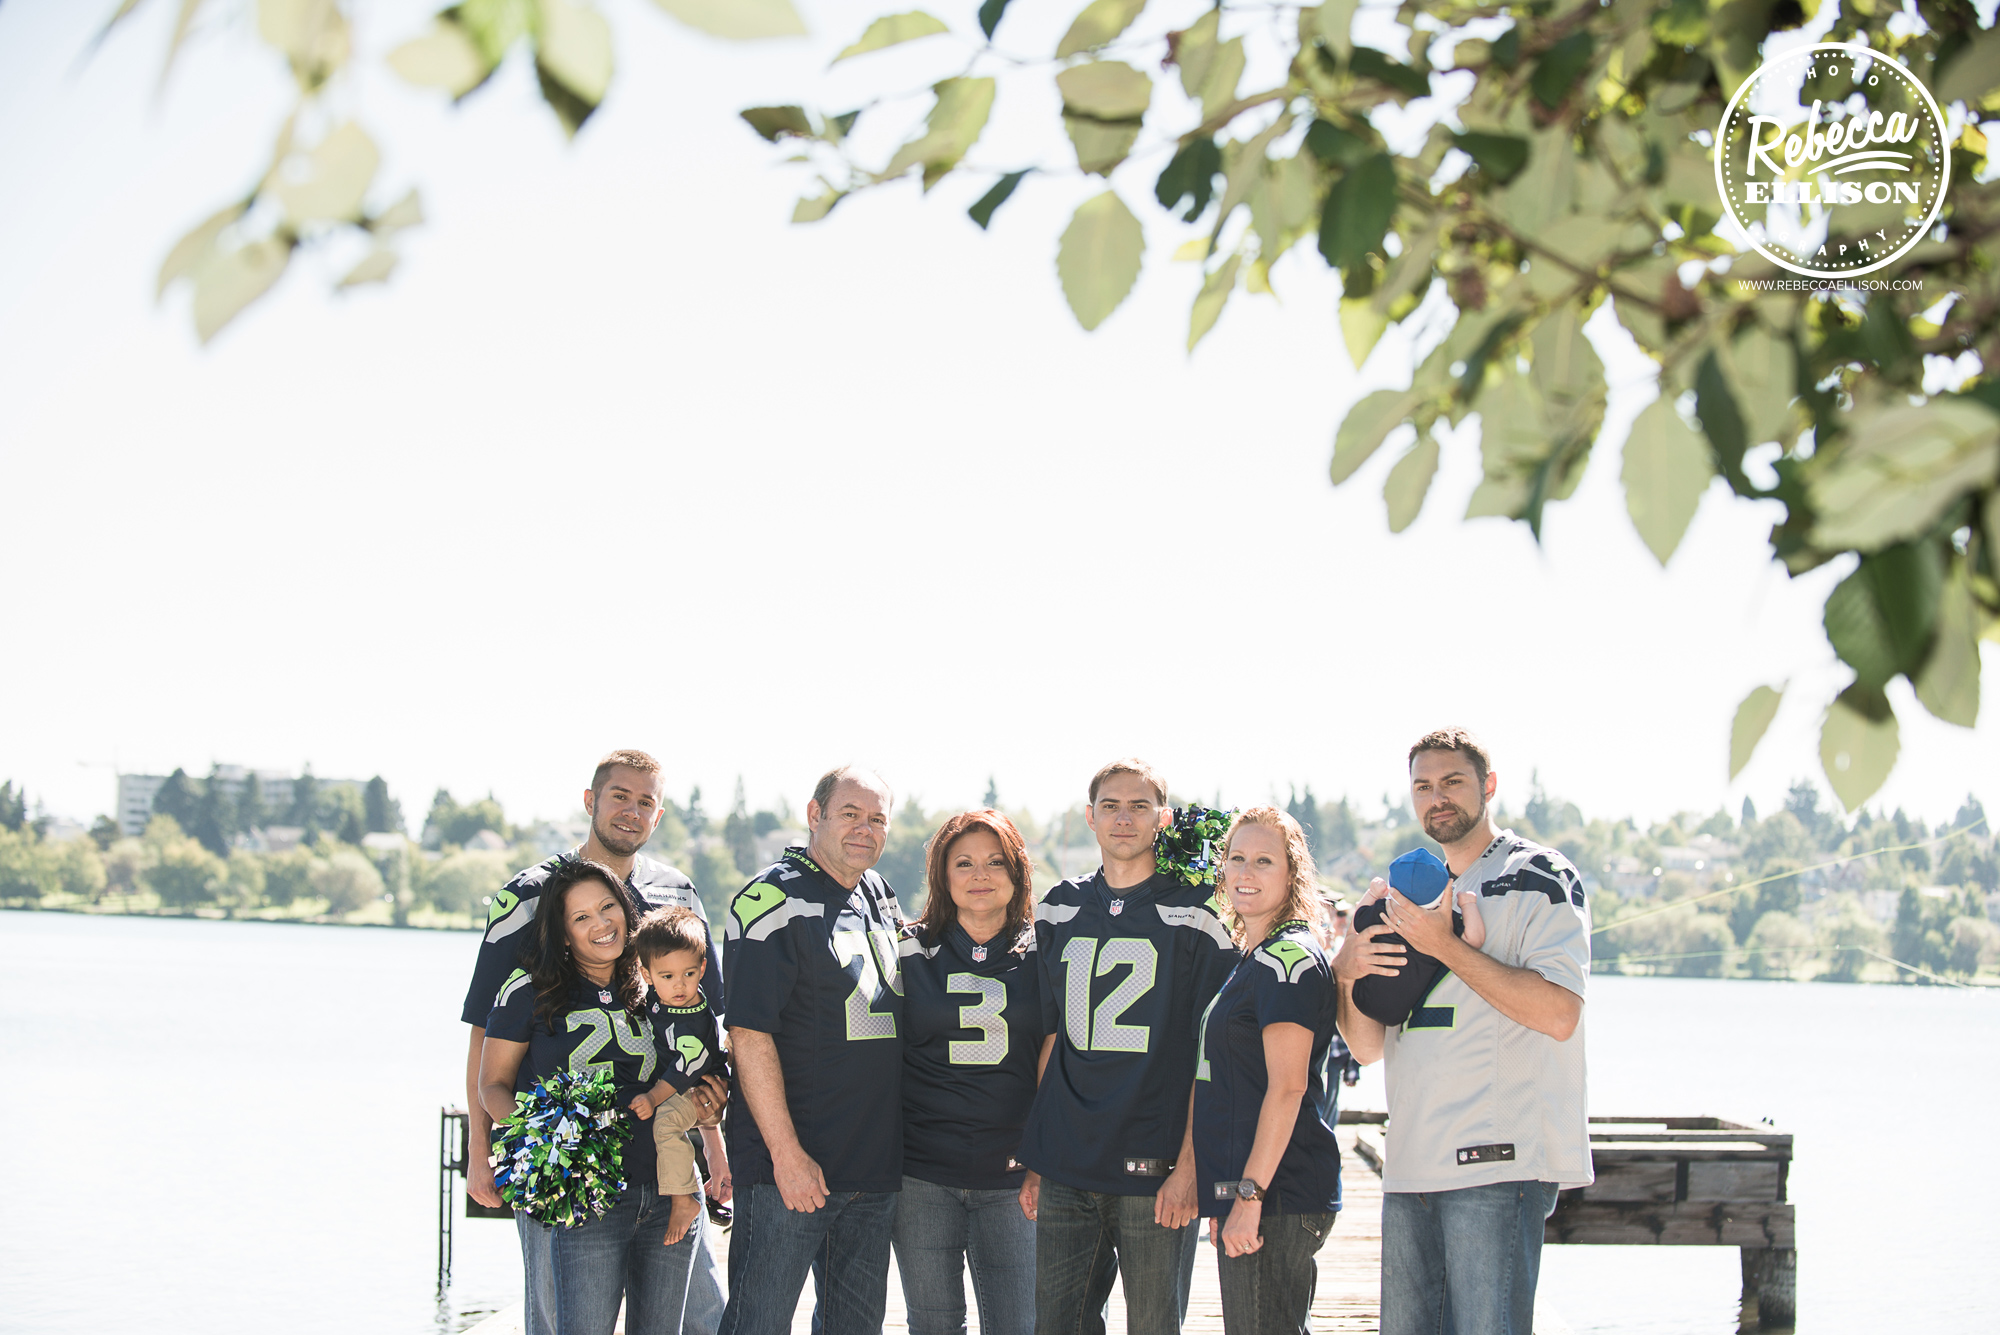 An extended family of Seahawks fans poses for family portraits at Greenlake park wearing their Seahawks jerseys photographed by Seattle family photographer Rebecca Ellison